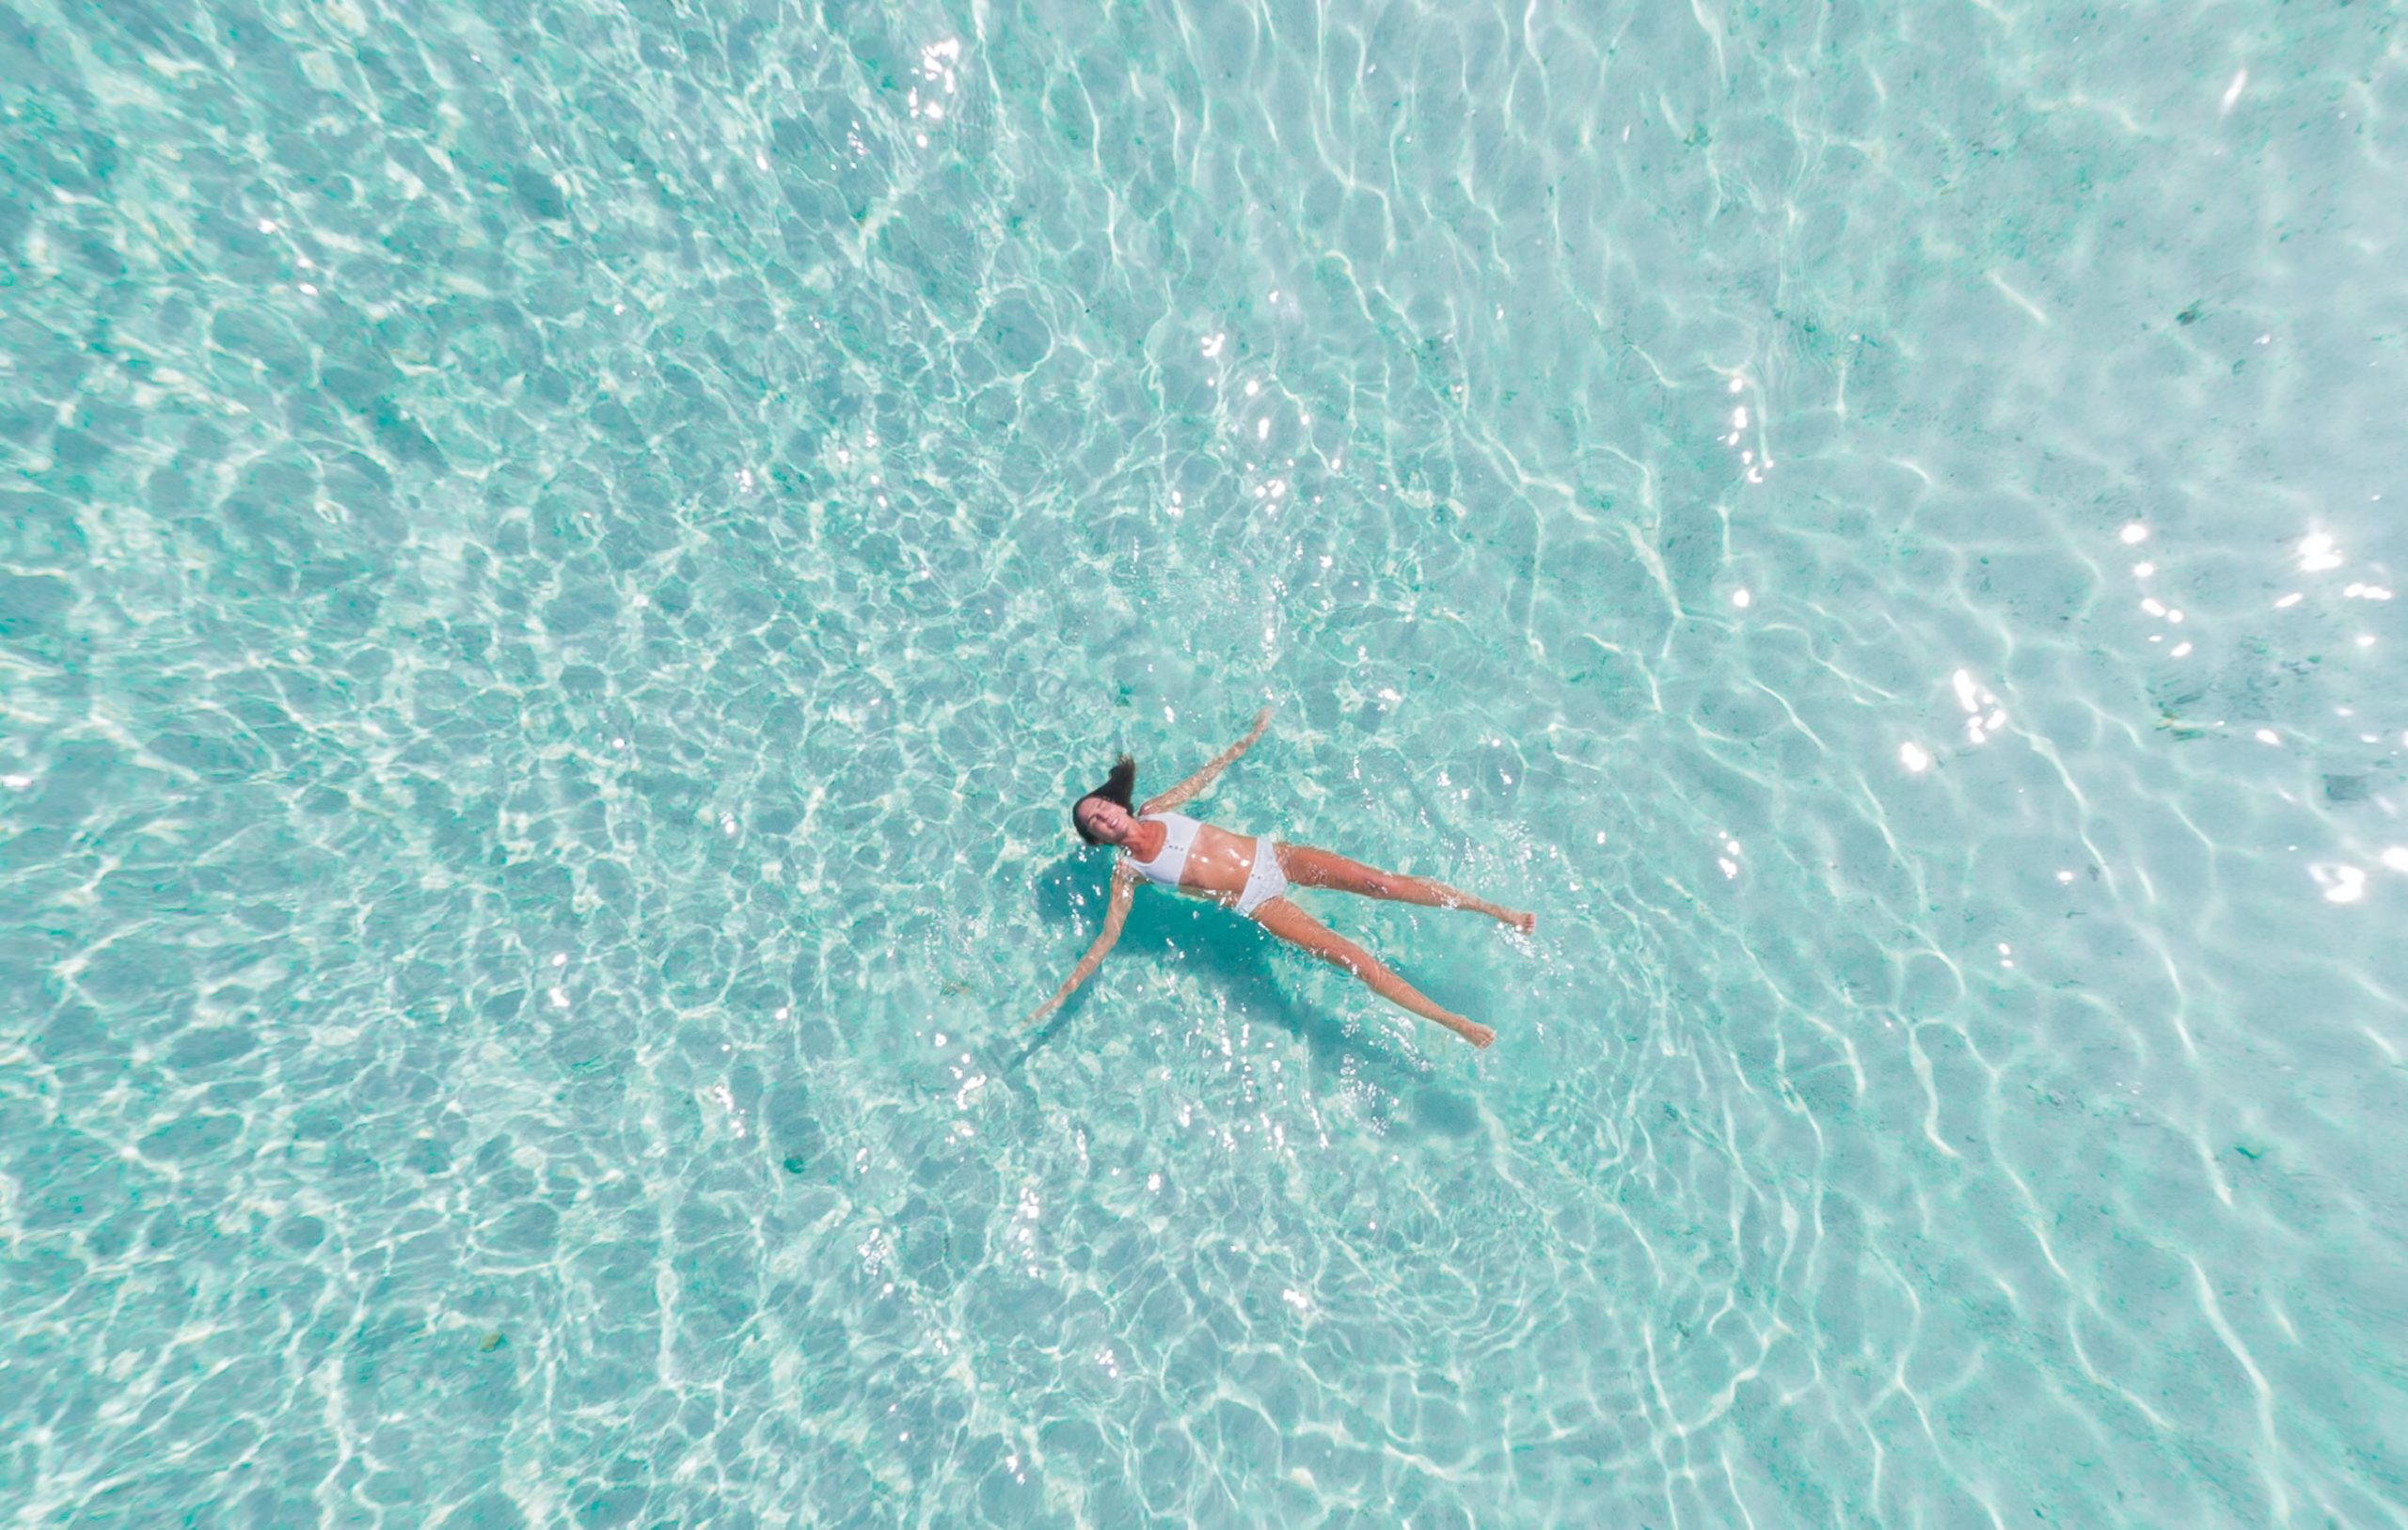 The experience of a morning swim in Halkidiki